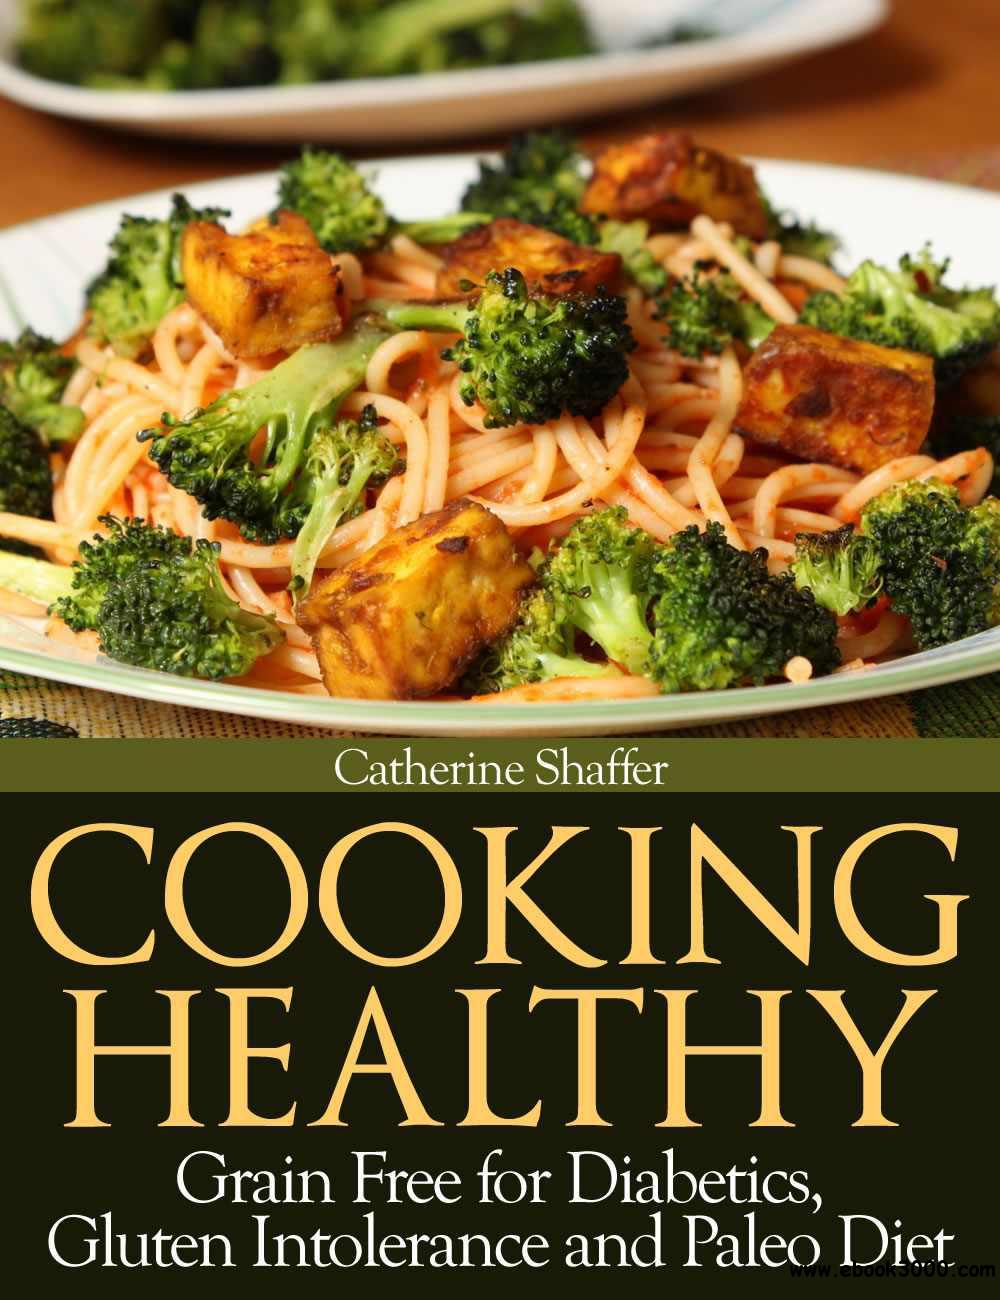 Cooking Healthy: Grain Free for Diabetics, Gluten Intolerance and Paleo Diet free download